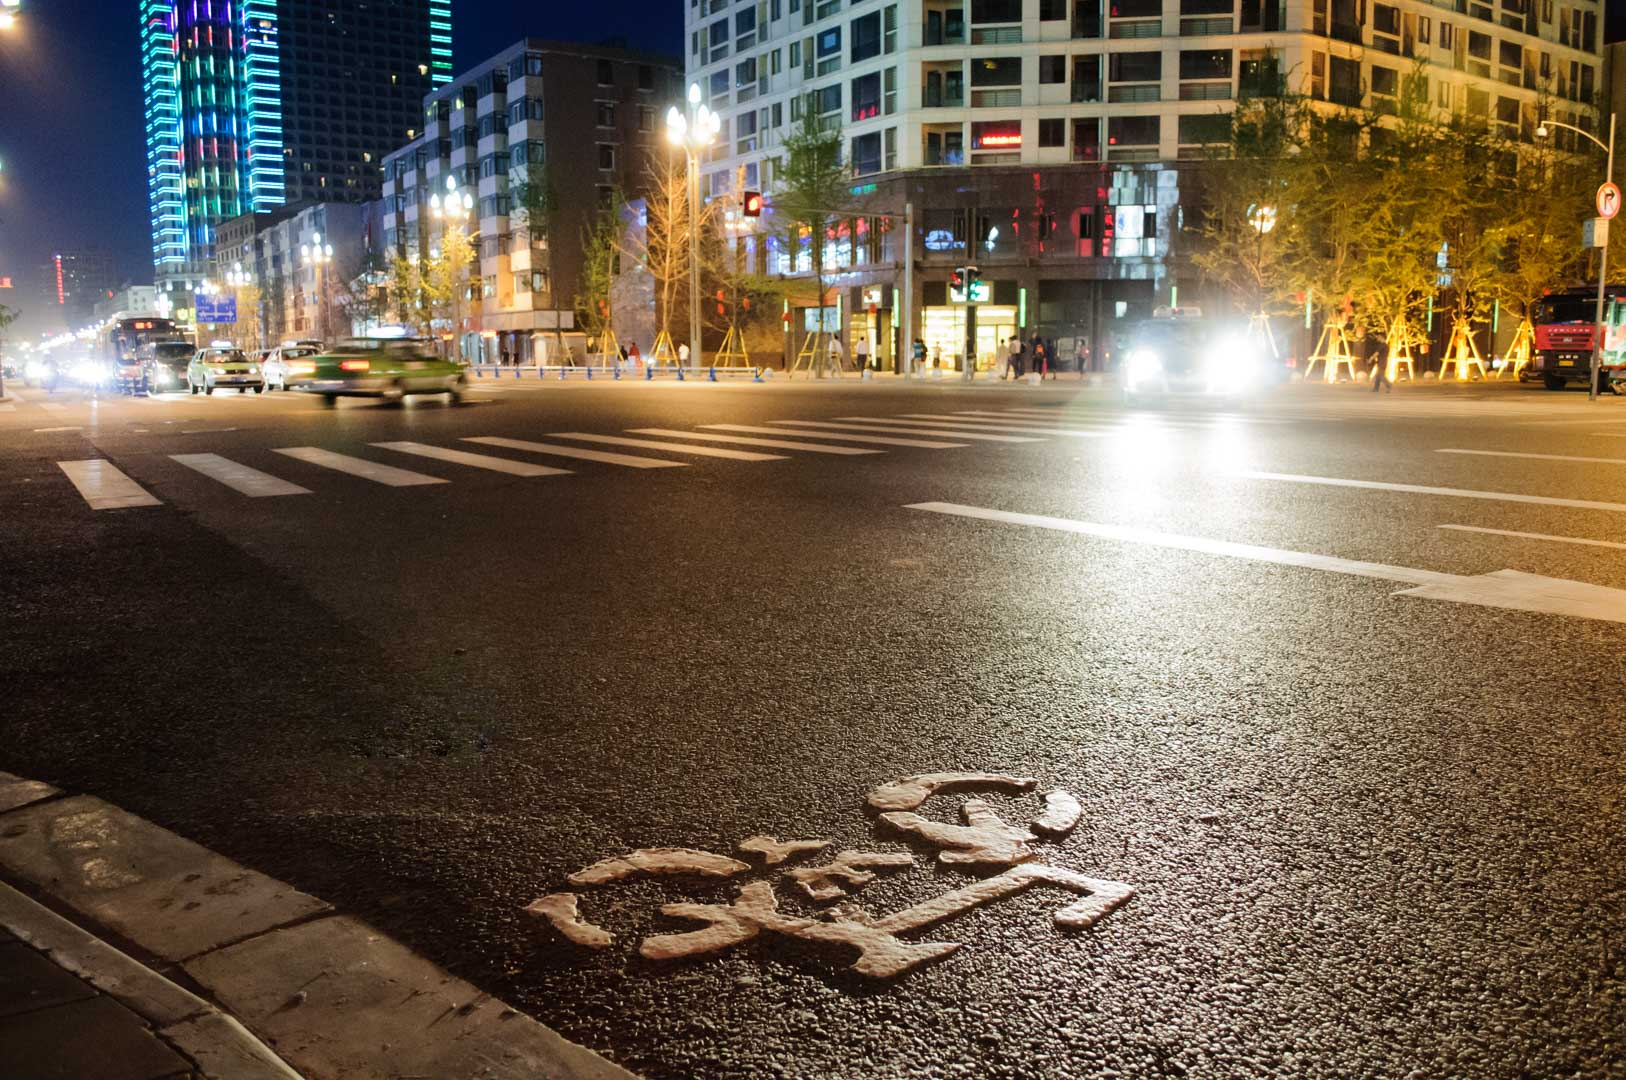 A bike path in Chengdu, China